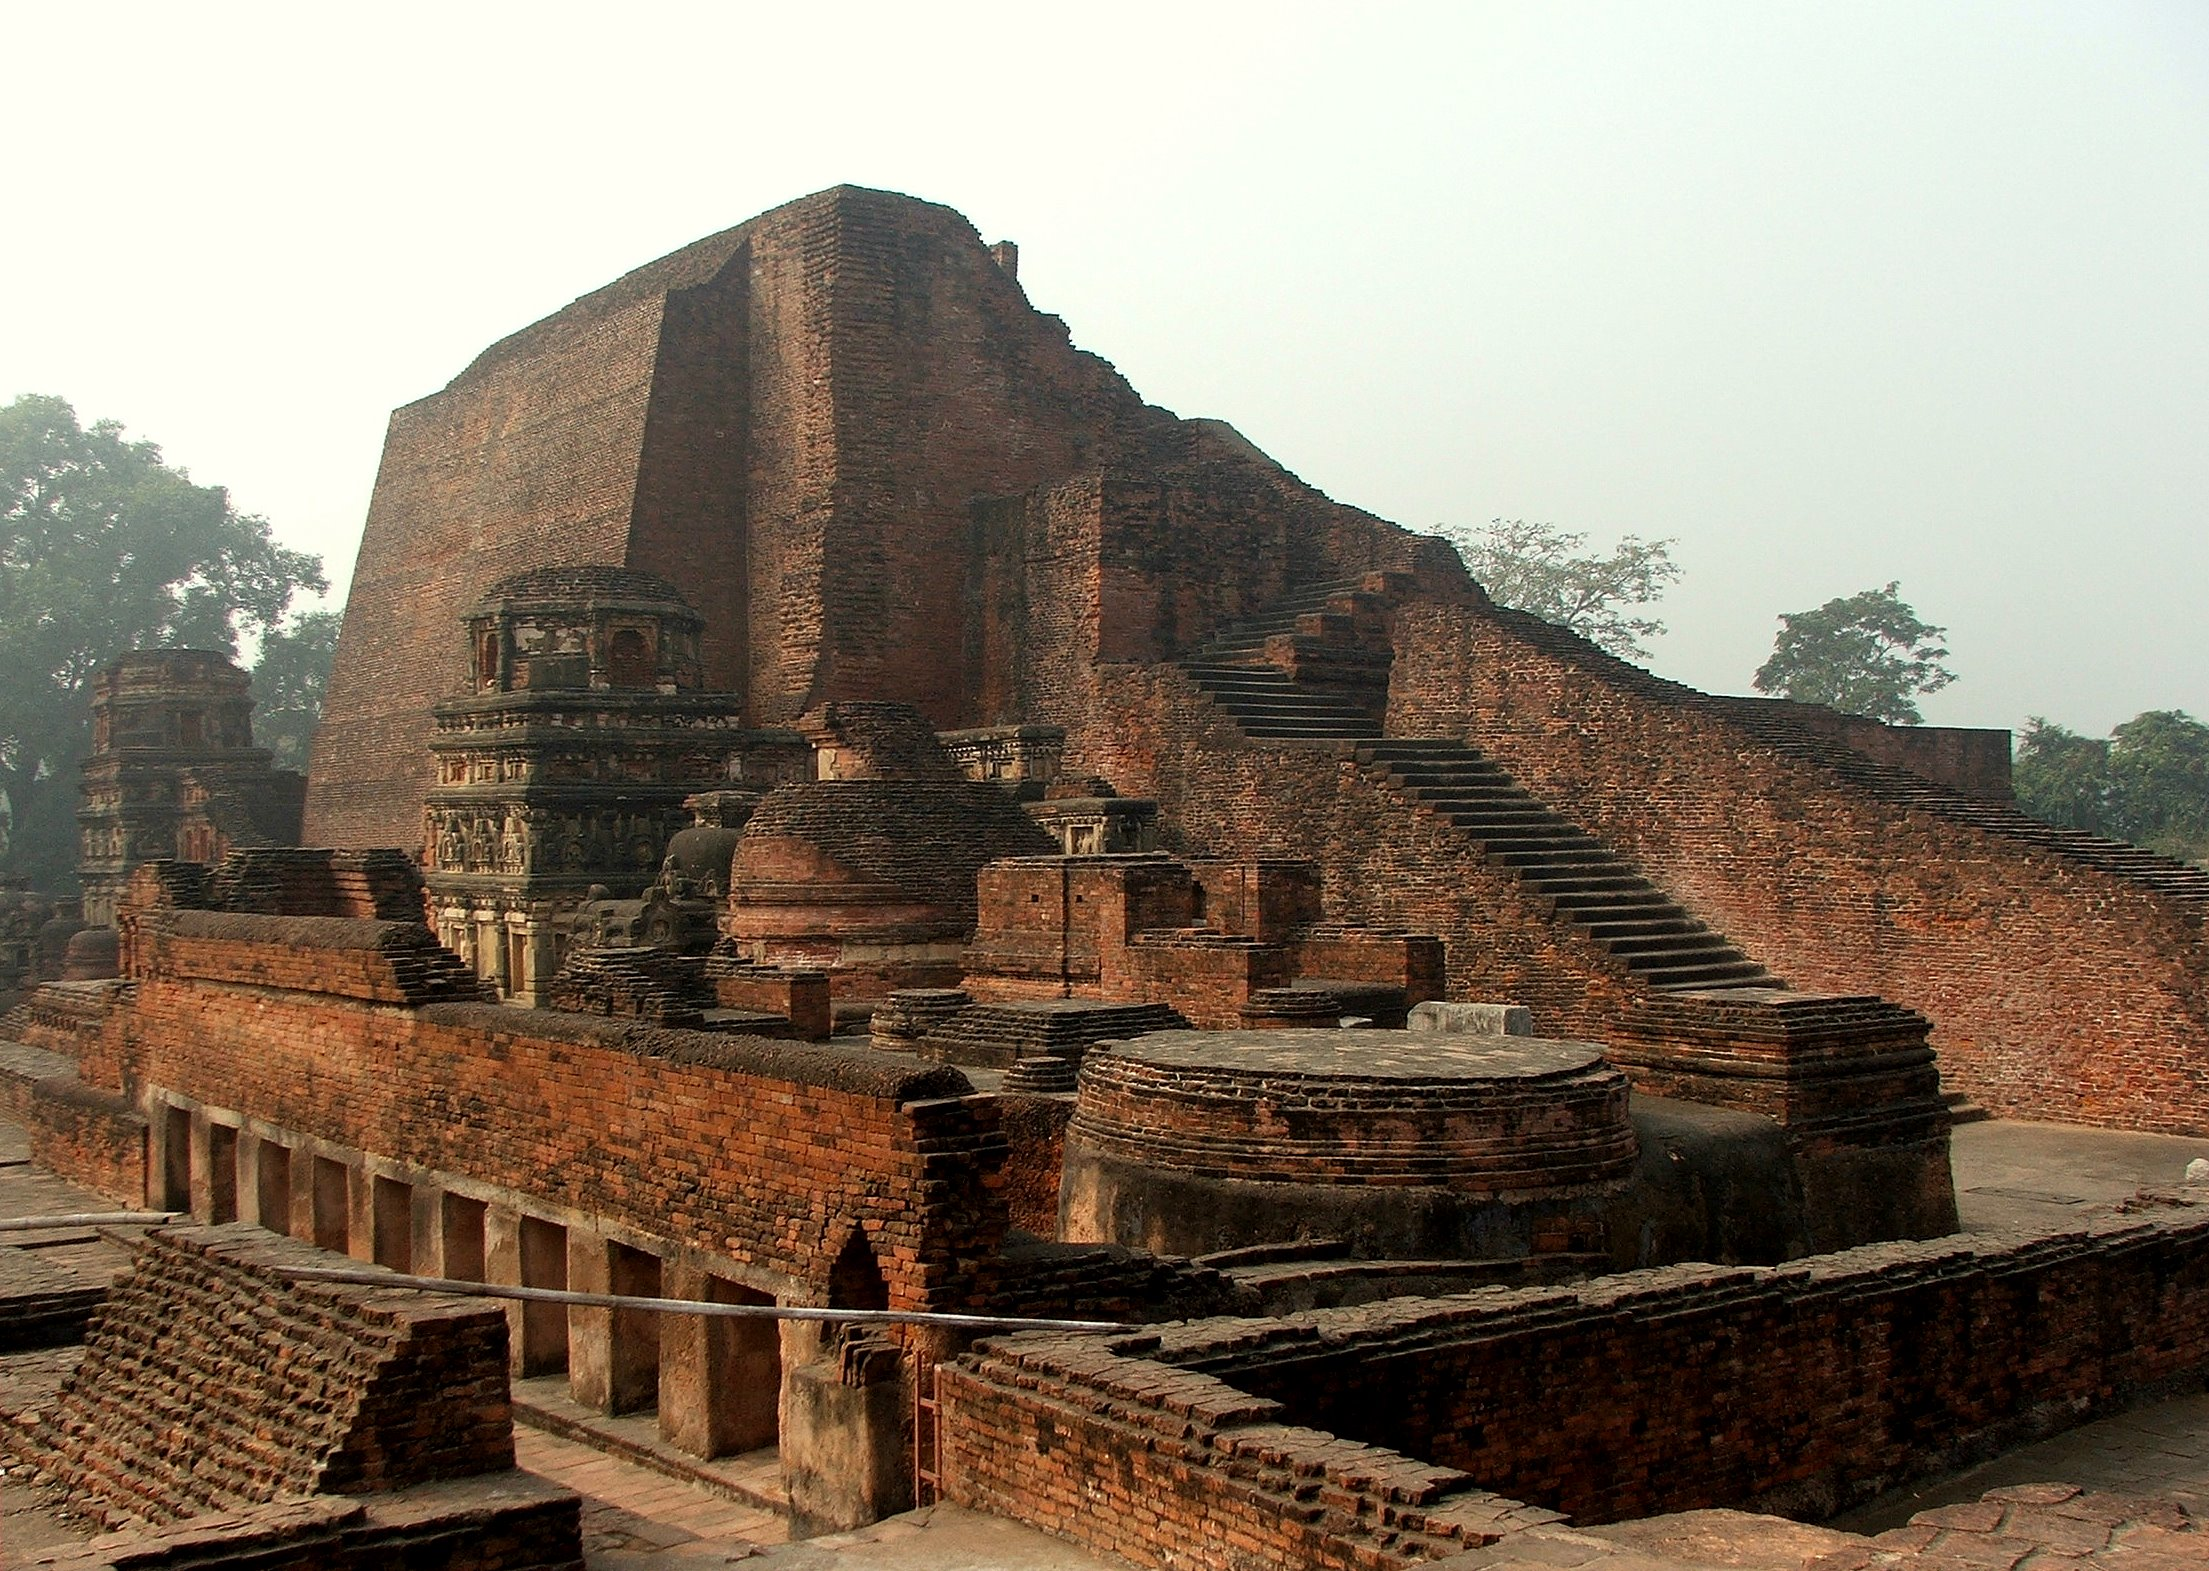 Nalanda is considered one of the first great universities in recorded history. It was the center of Buddhist learning and research in the world from 450 to 1193 CE.